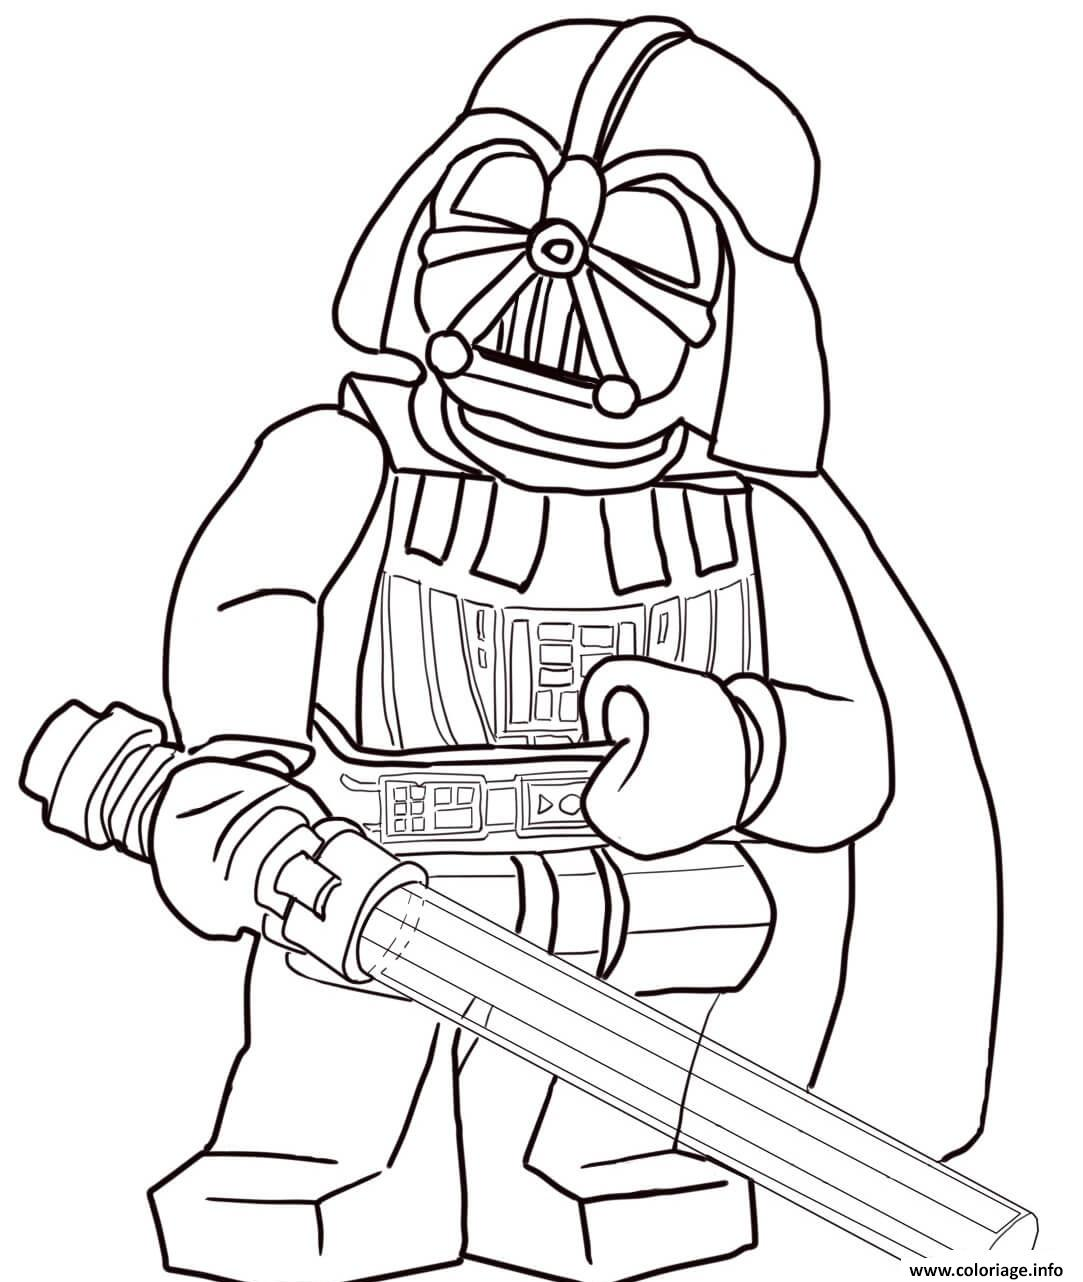 Coloriage lego star wars darth vader - Dessin lego a colorier ...